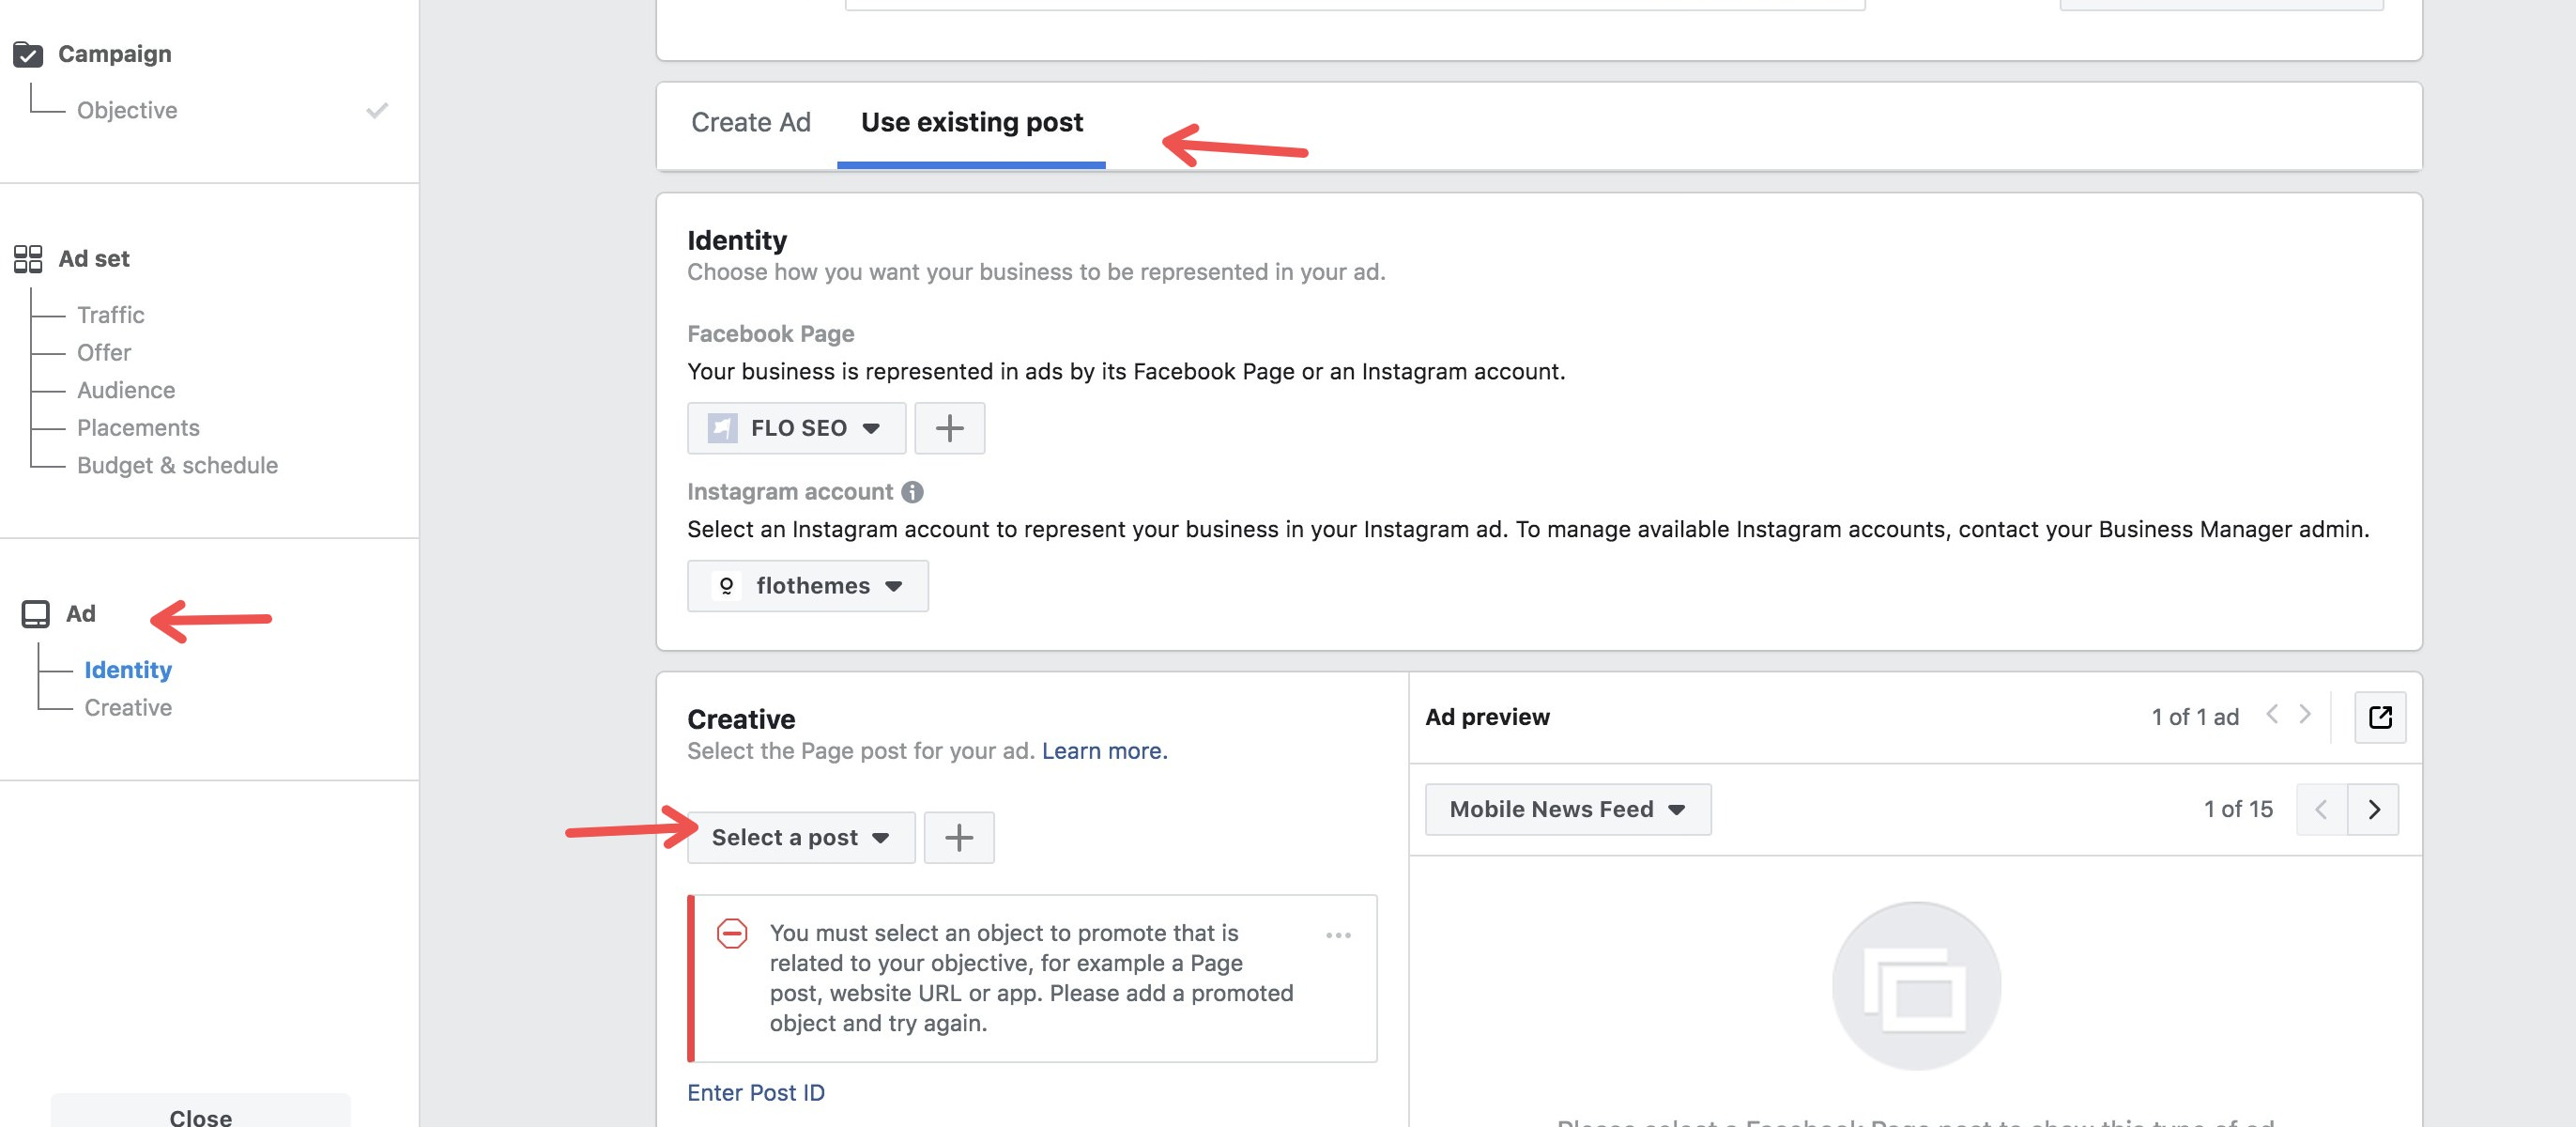 Facebook for Business: A Quick Guide on Facebook Ads